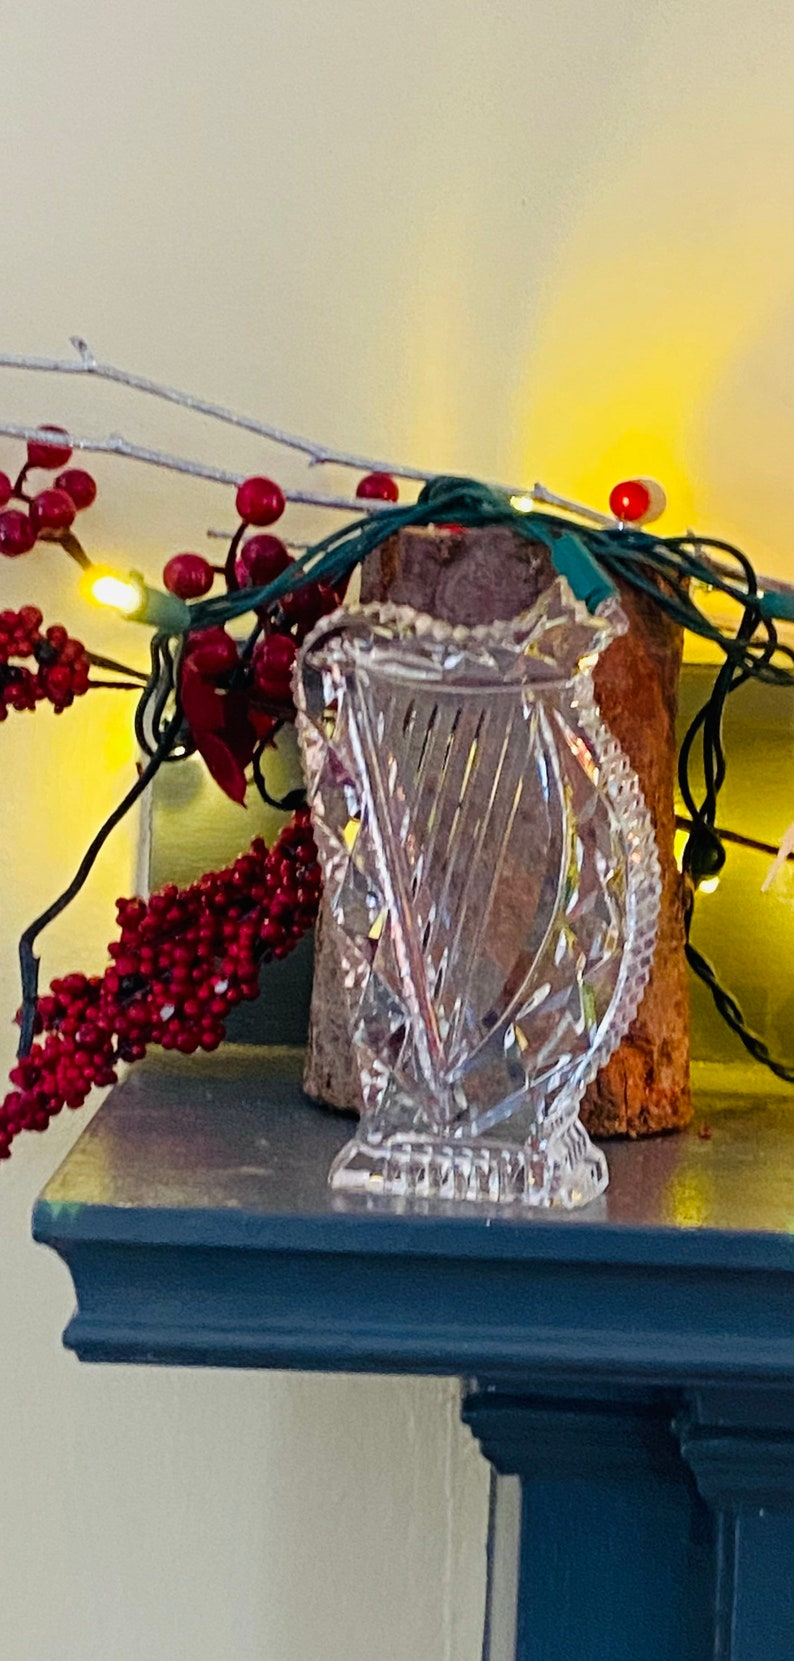 Waterford Collector\u2019s Piece Authentic Waterford Crystal Vintage Irish Hand Cut Crystal Harp Ireland Waterford Glass Art Marked